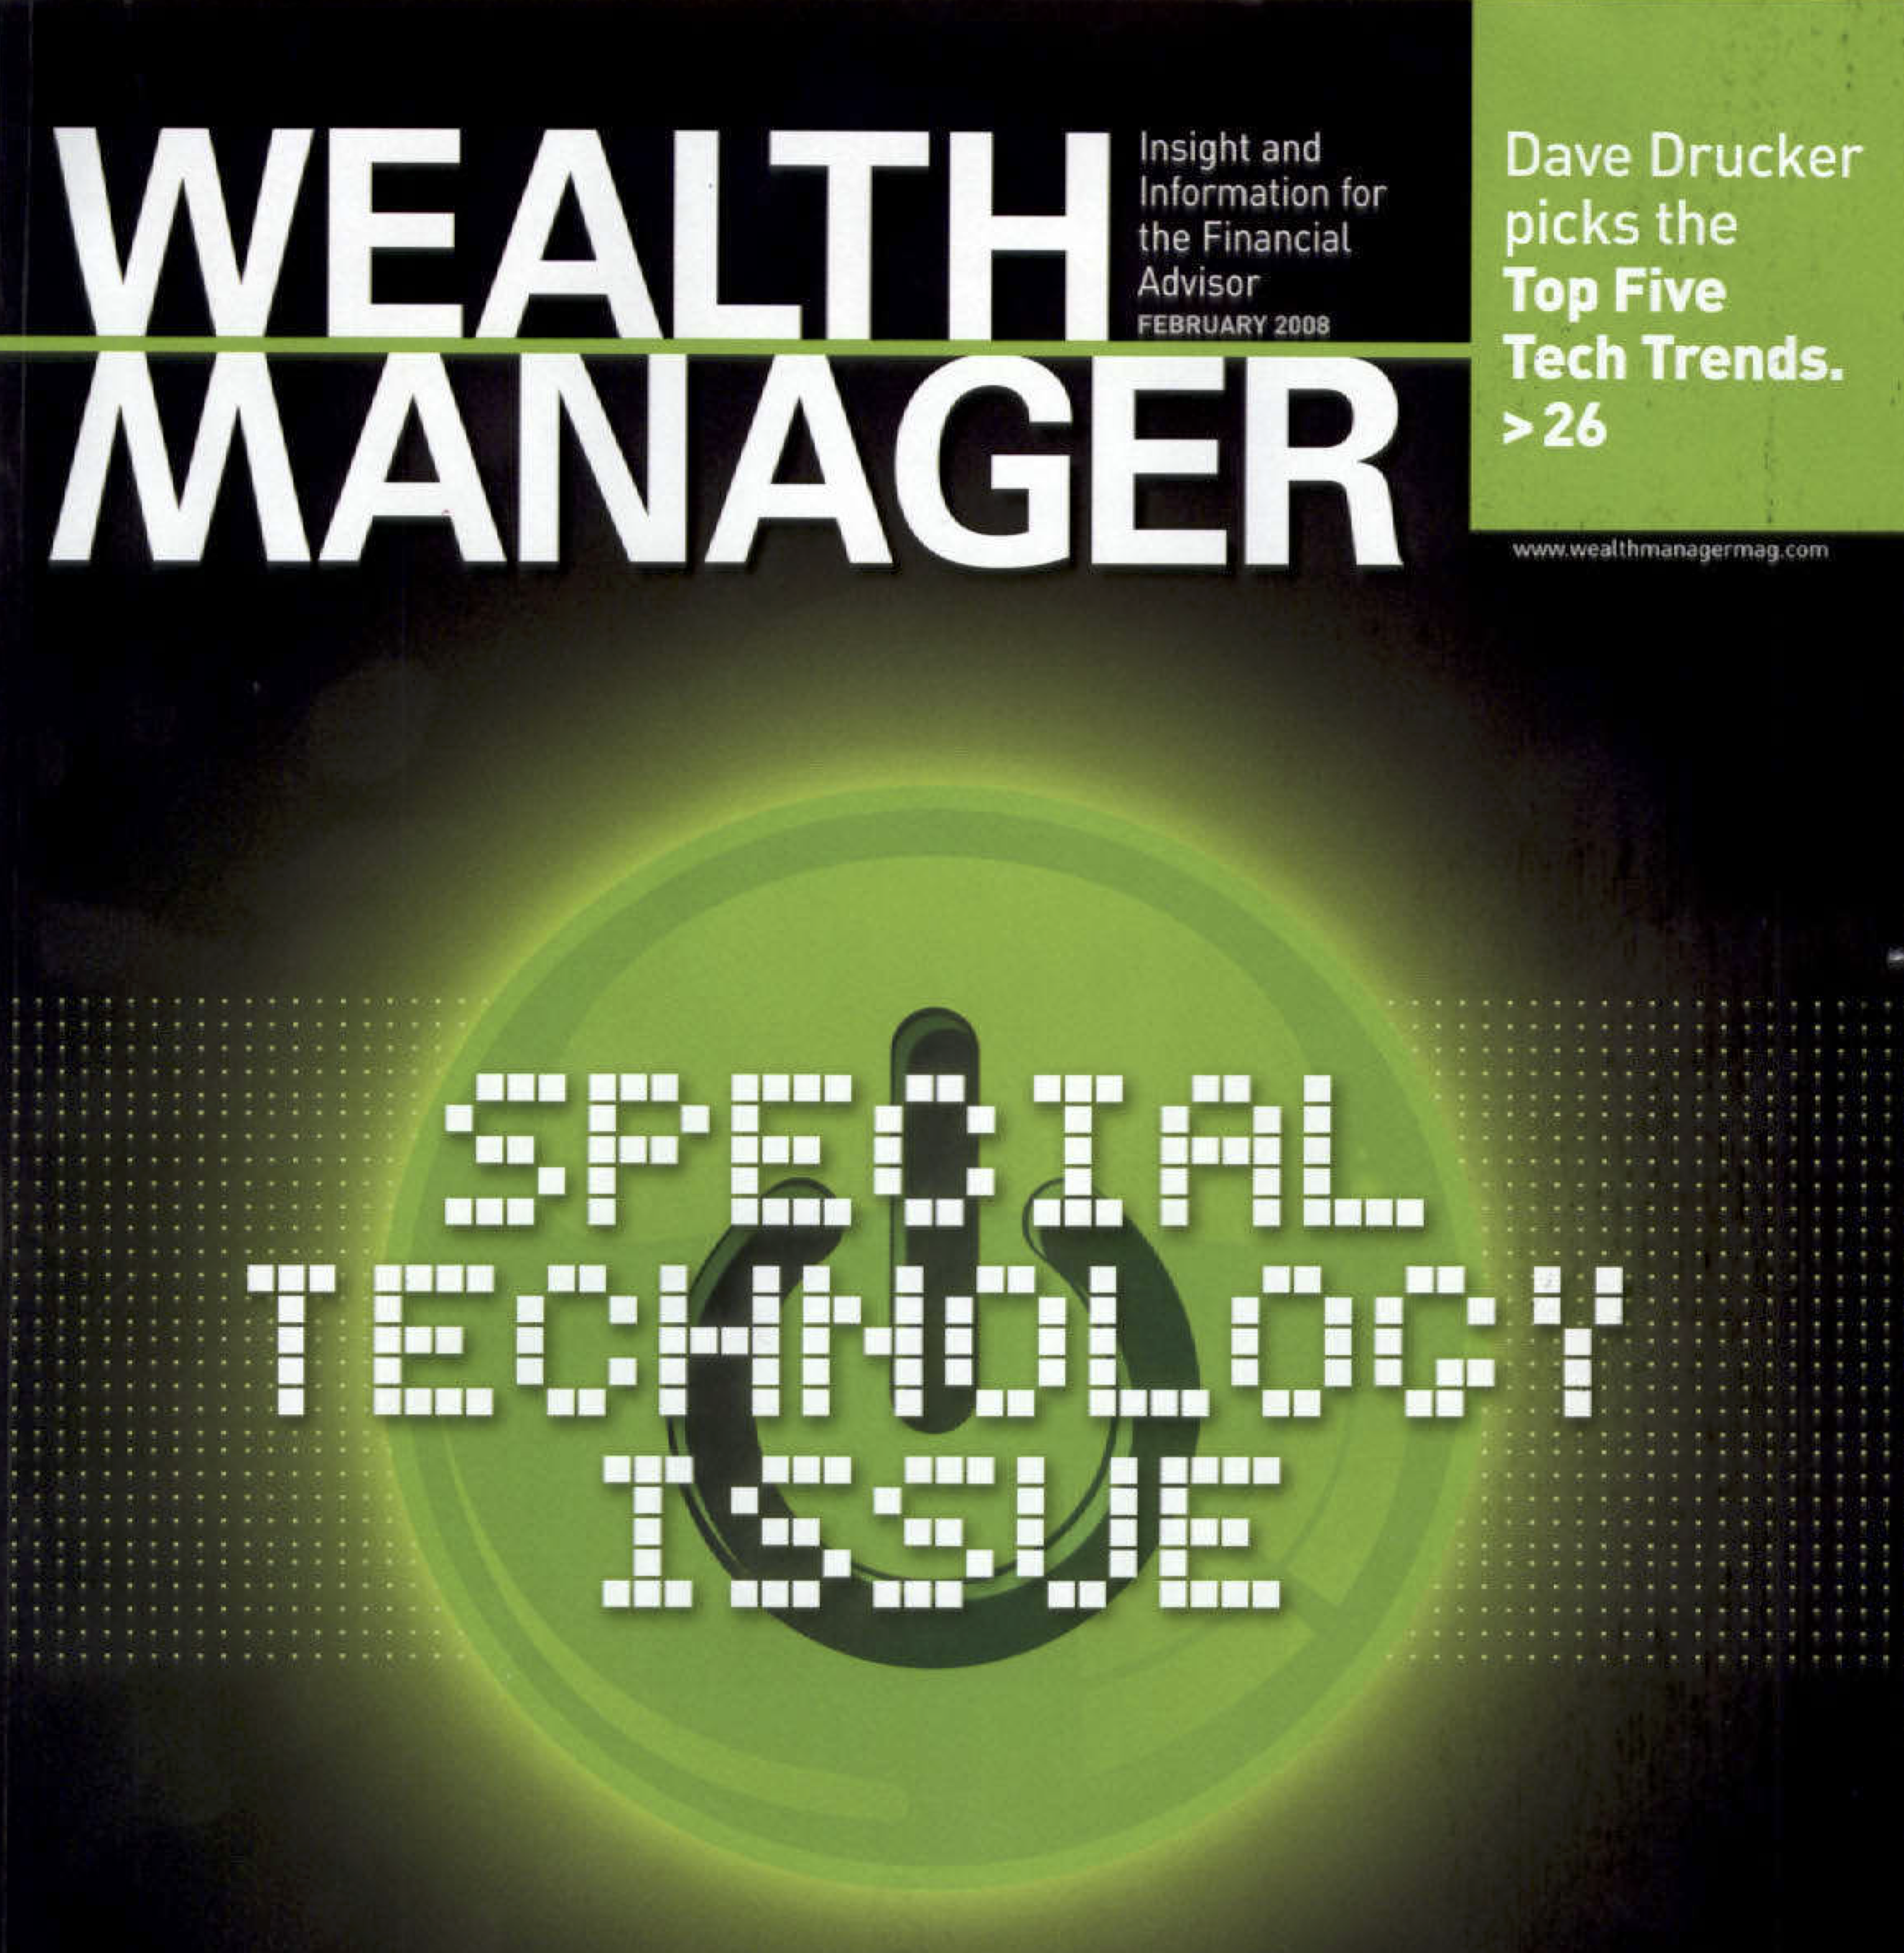 Investec - Wealth Manager Magazine Article Feature in Special Technology Edition, 2008